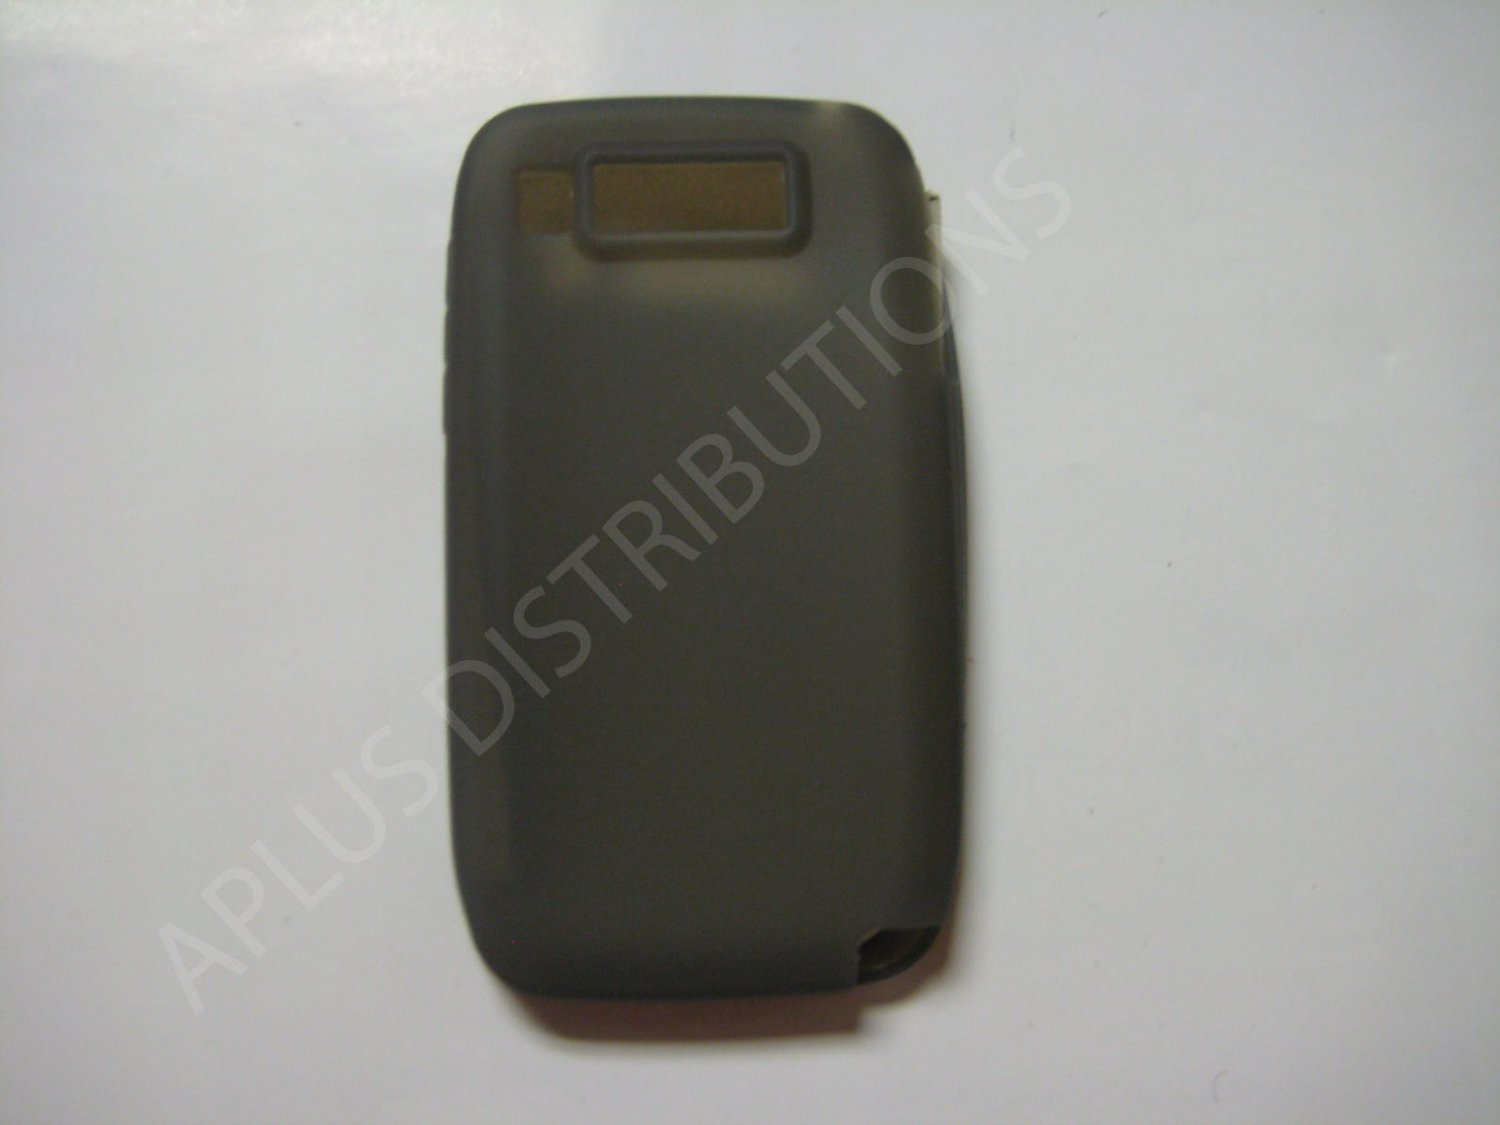 New Smoke Solid Color Silicone Skin Case For Nokia E72 - (0012)